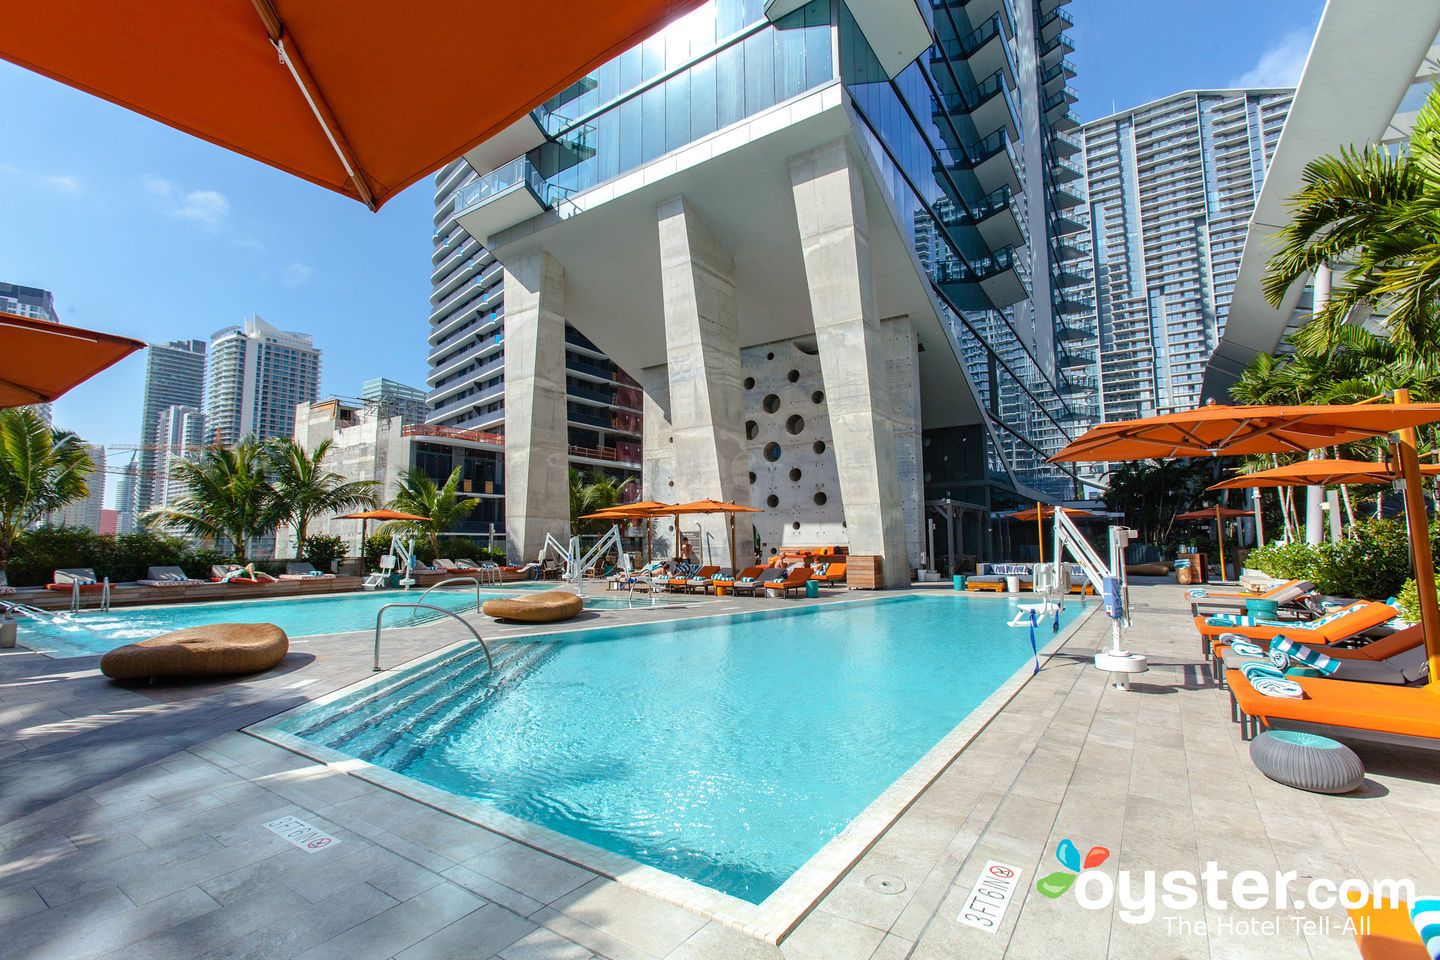 EAST, Miami - The Bay King Room at the EAST, Miami | Oyster.com Hotel Photos